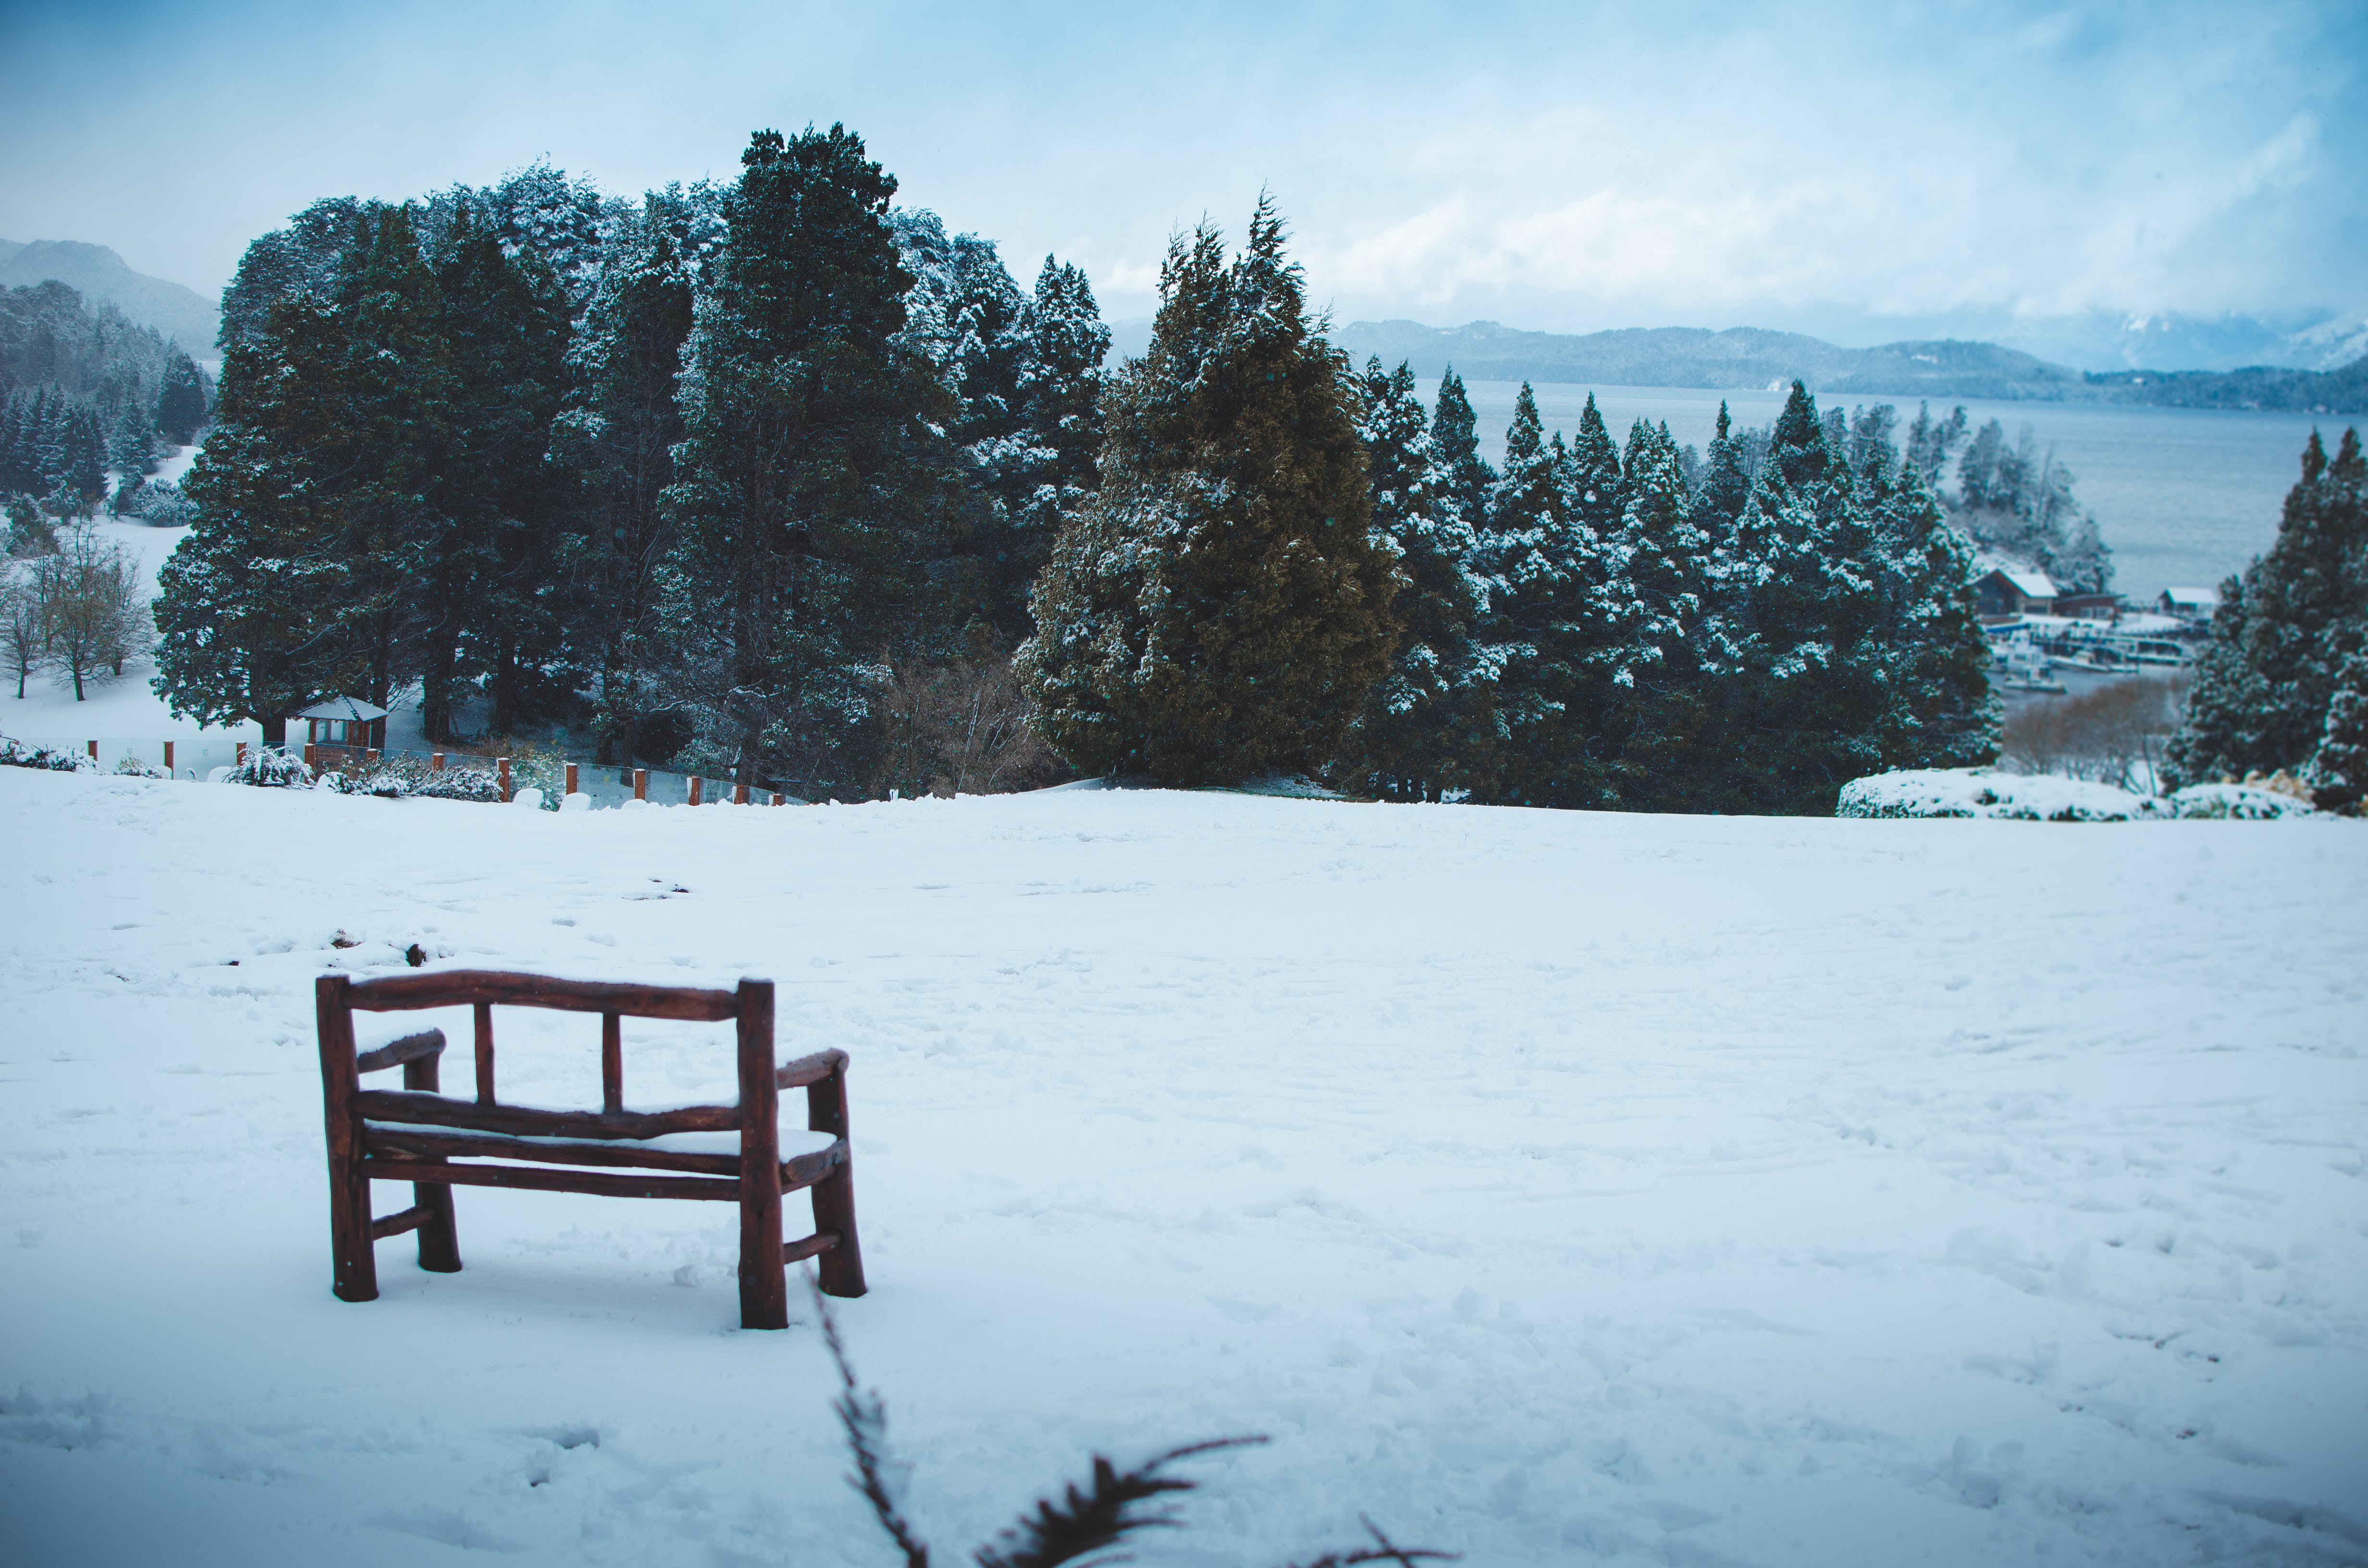 Wooden Bench on Snow Field Under Blue Sky